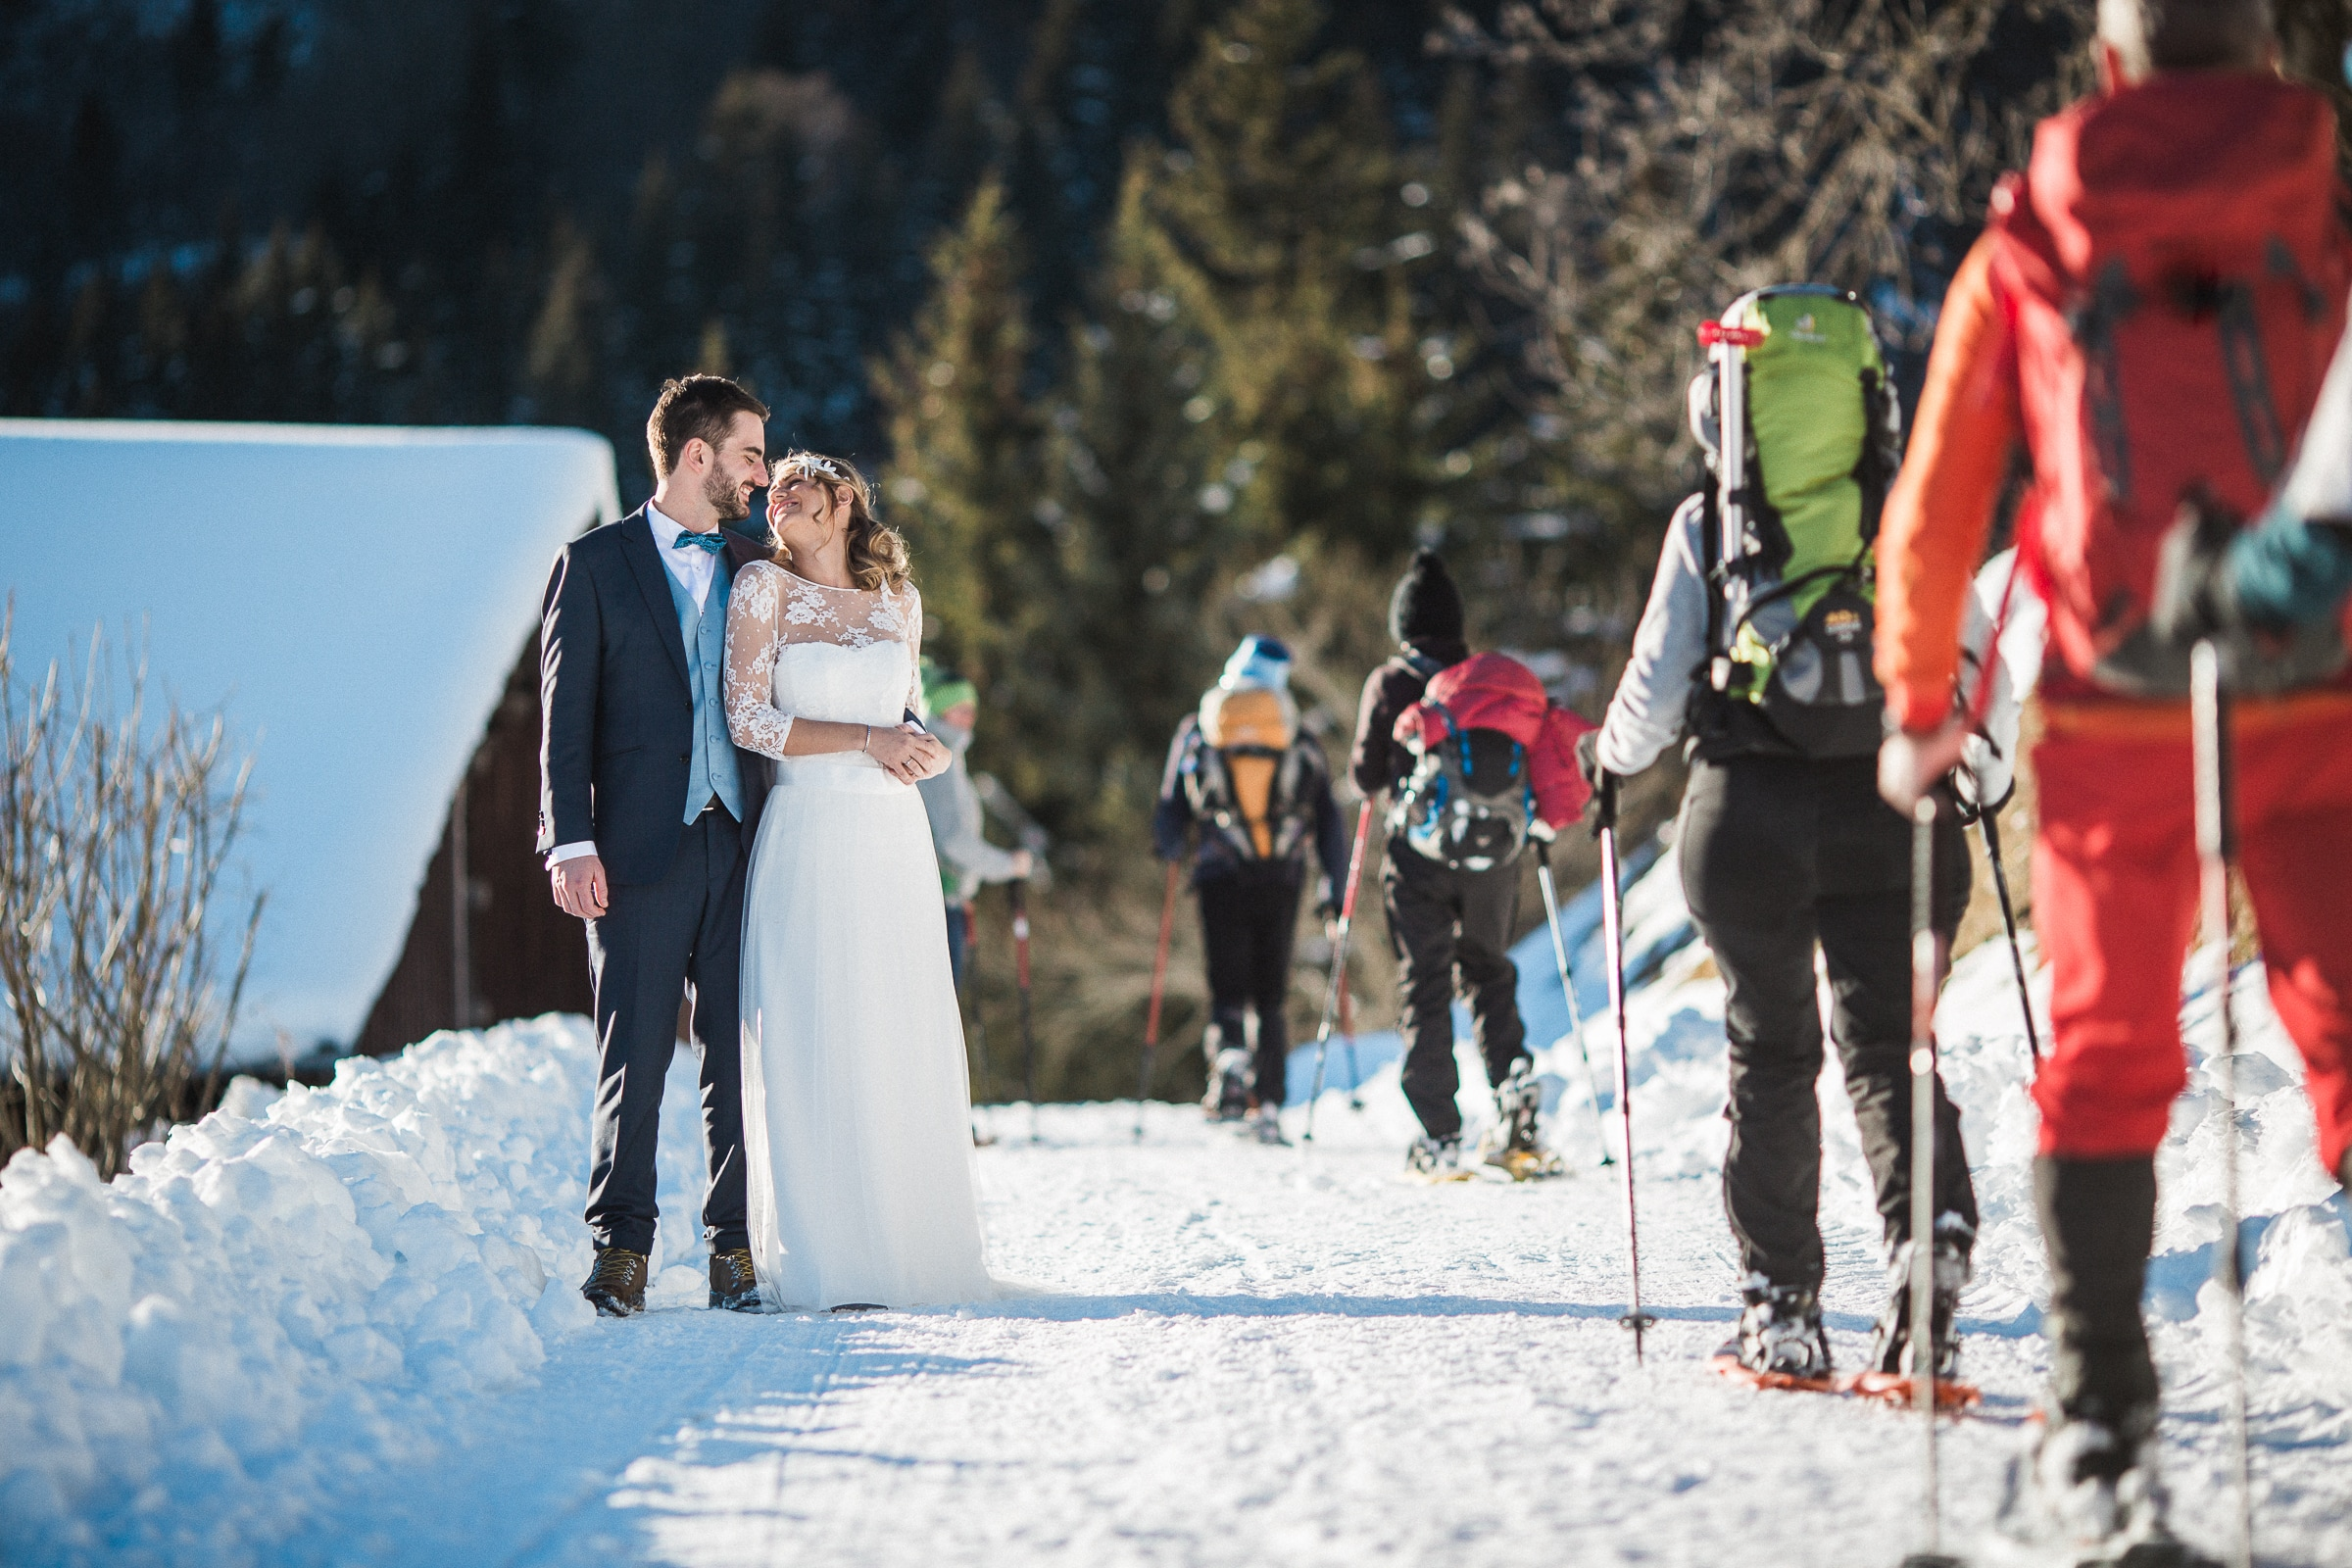 couple-portrait-in-the-snow-with-passing-snowshoers-sylvain-bouzat-wedding-photographer